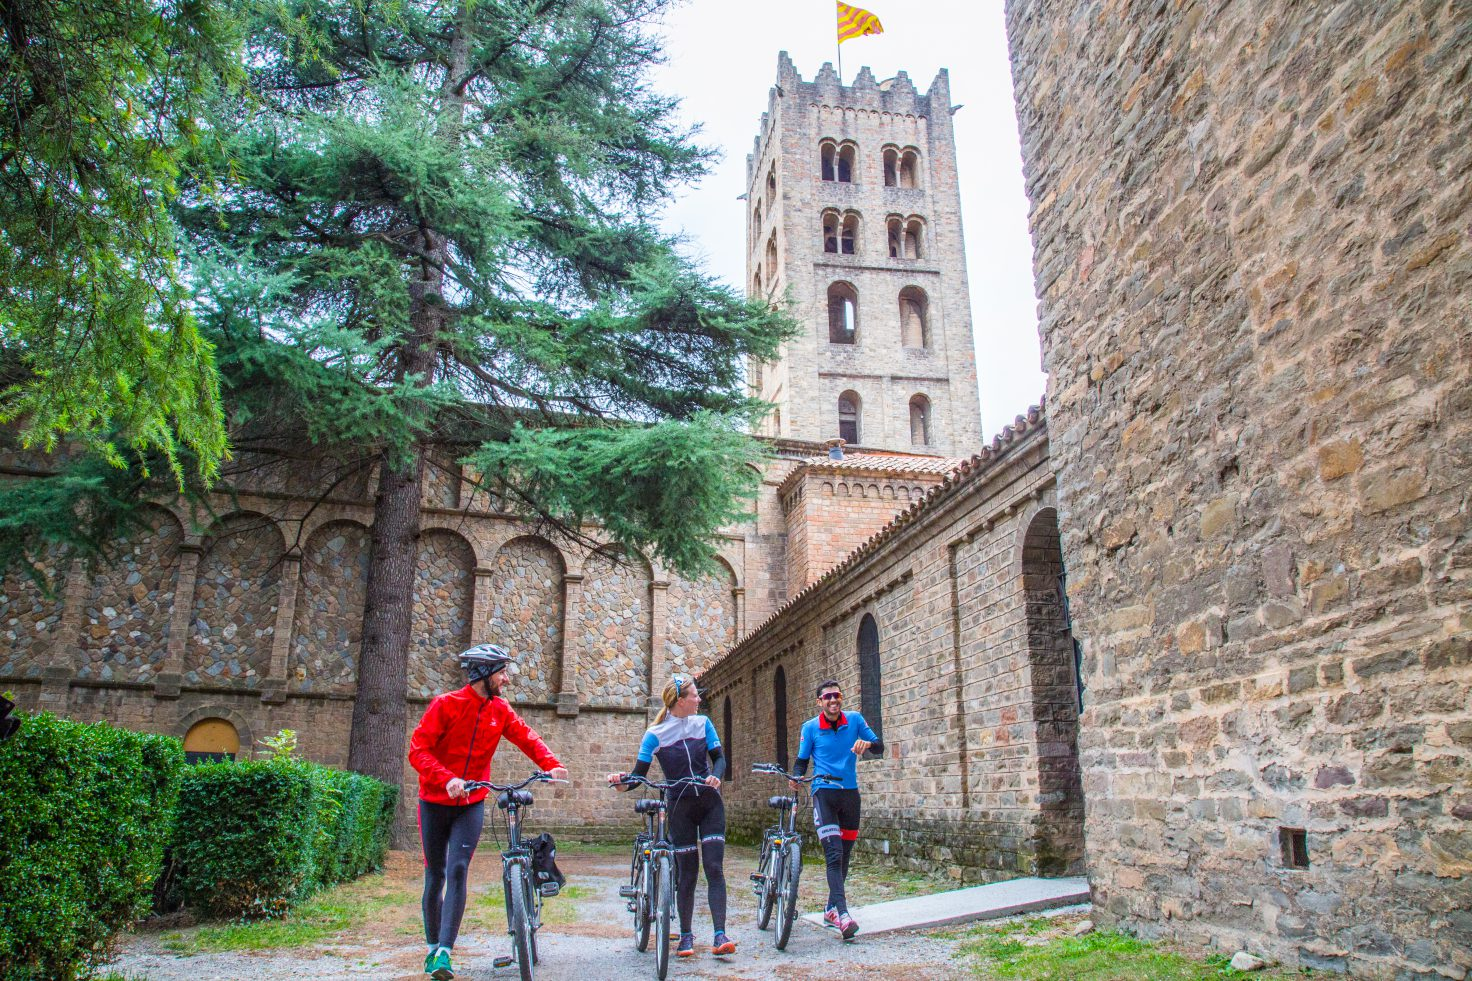 Cyclists on the monastery of Ripoll